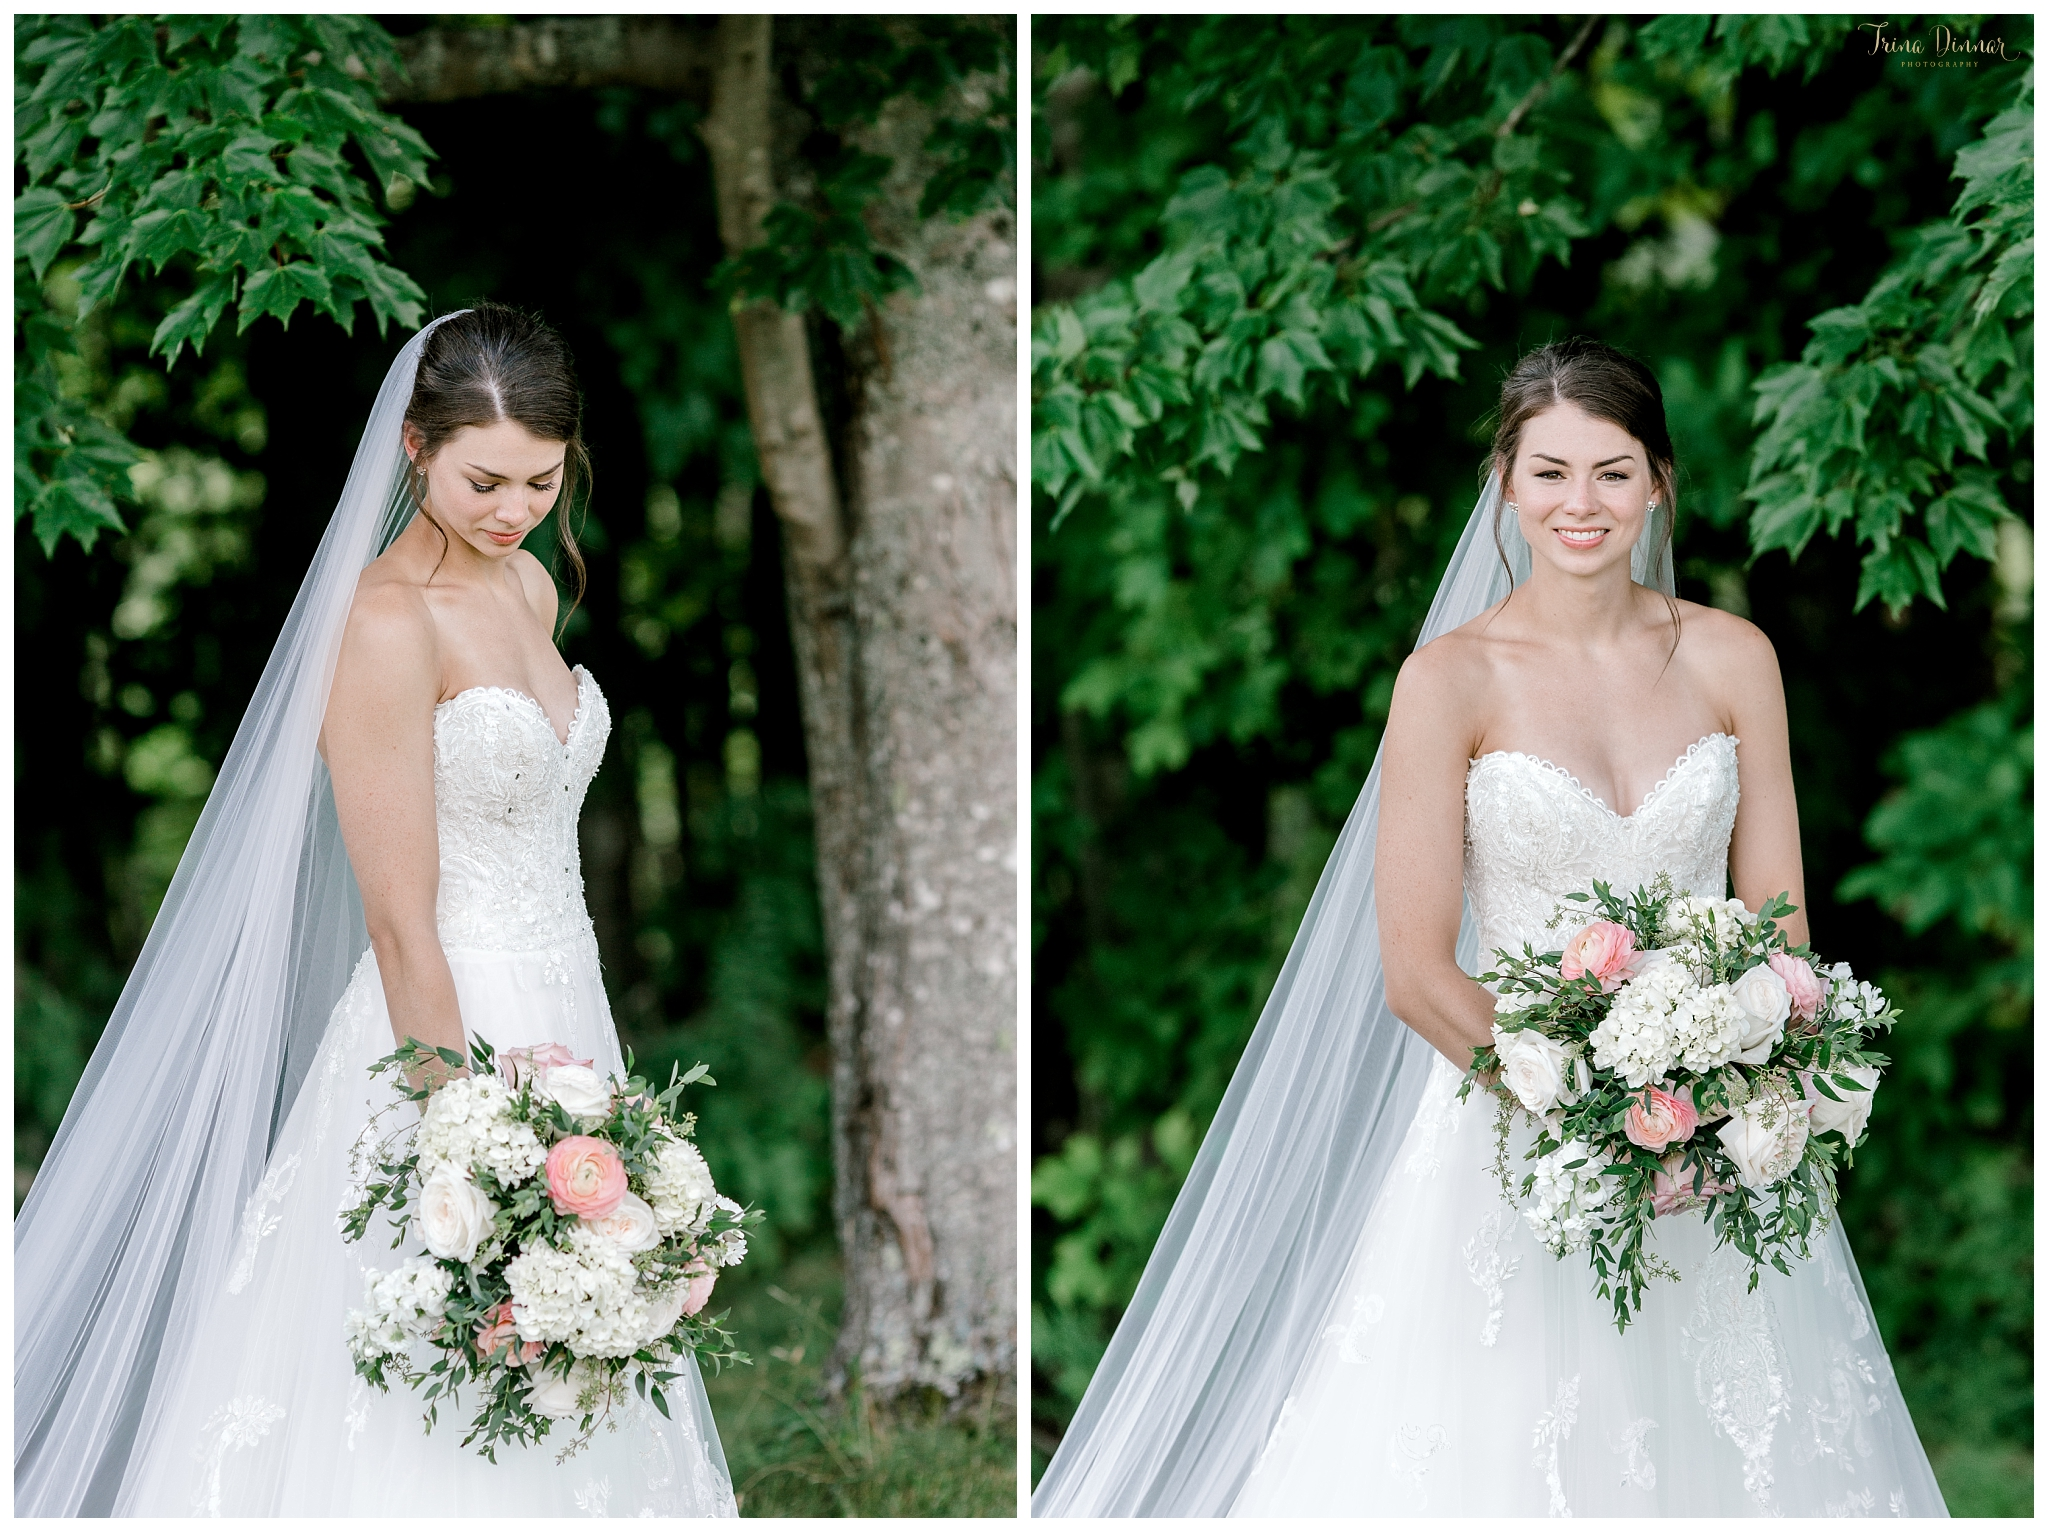 Dedham, ME Wedding Bridal Portraits